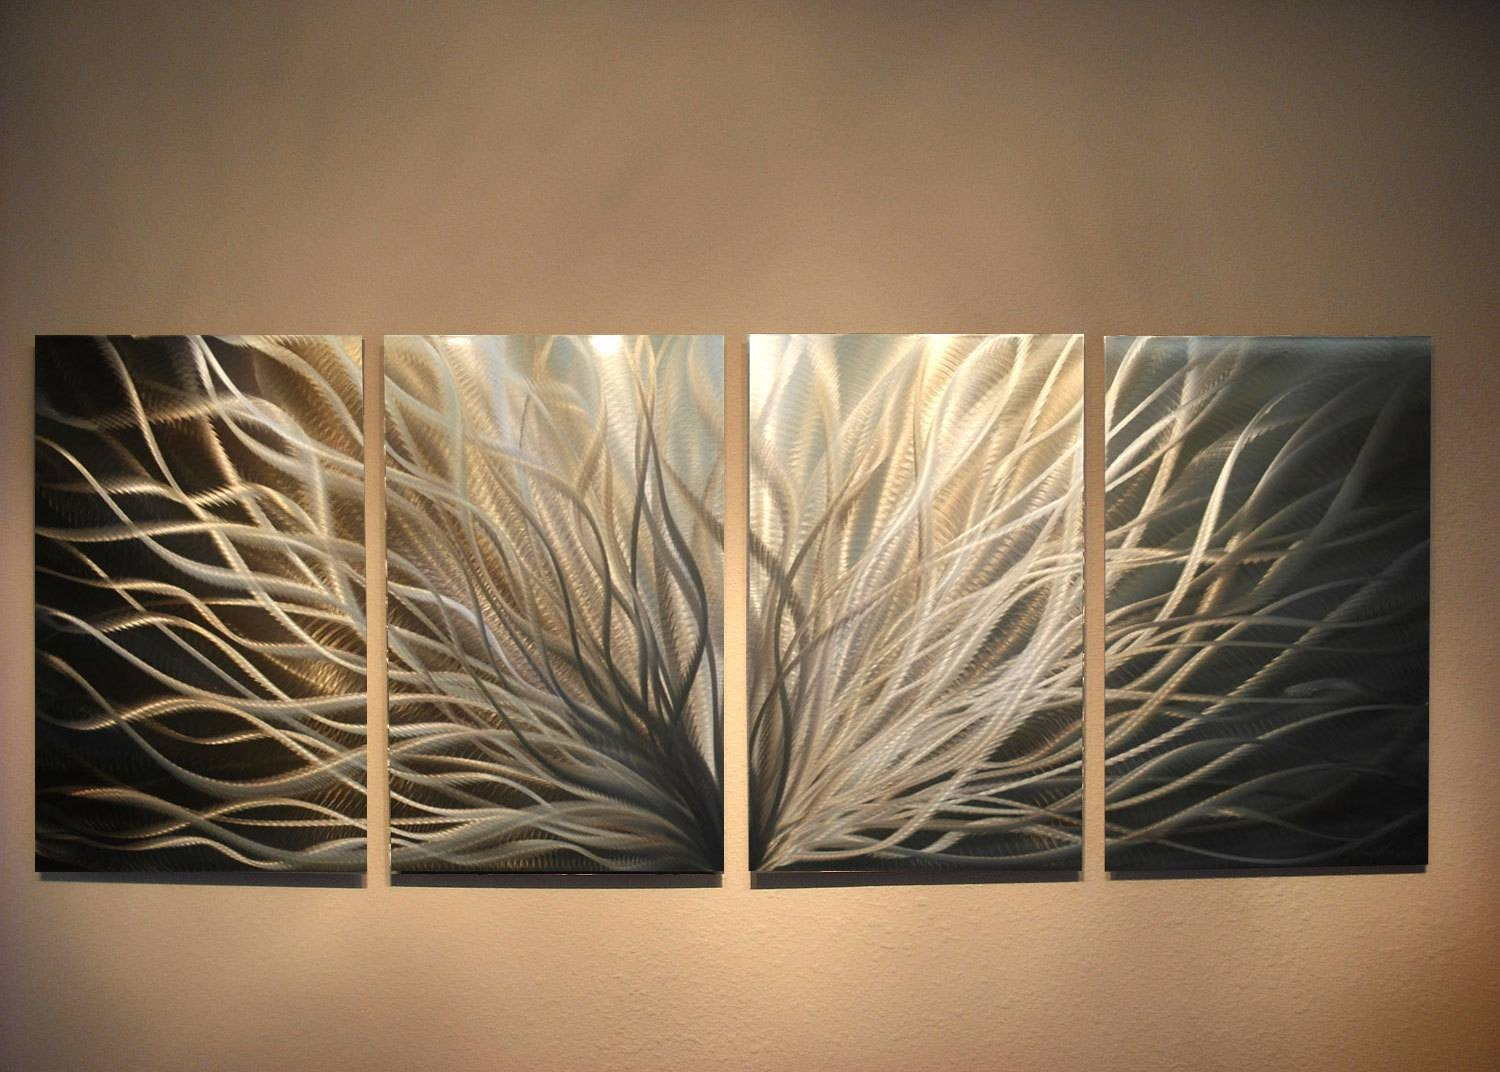 Metal Wall Art Modern Abstract Decormiles Shayinspiringart Pertaining To 2017 Contemporary Metal Wall Art Sculpture (View 16 of 20)